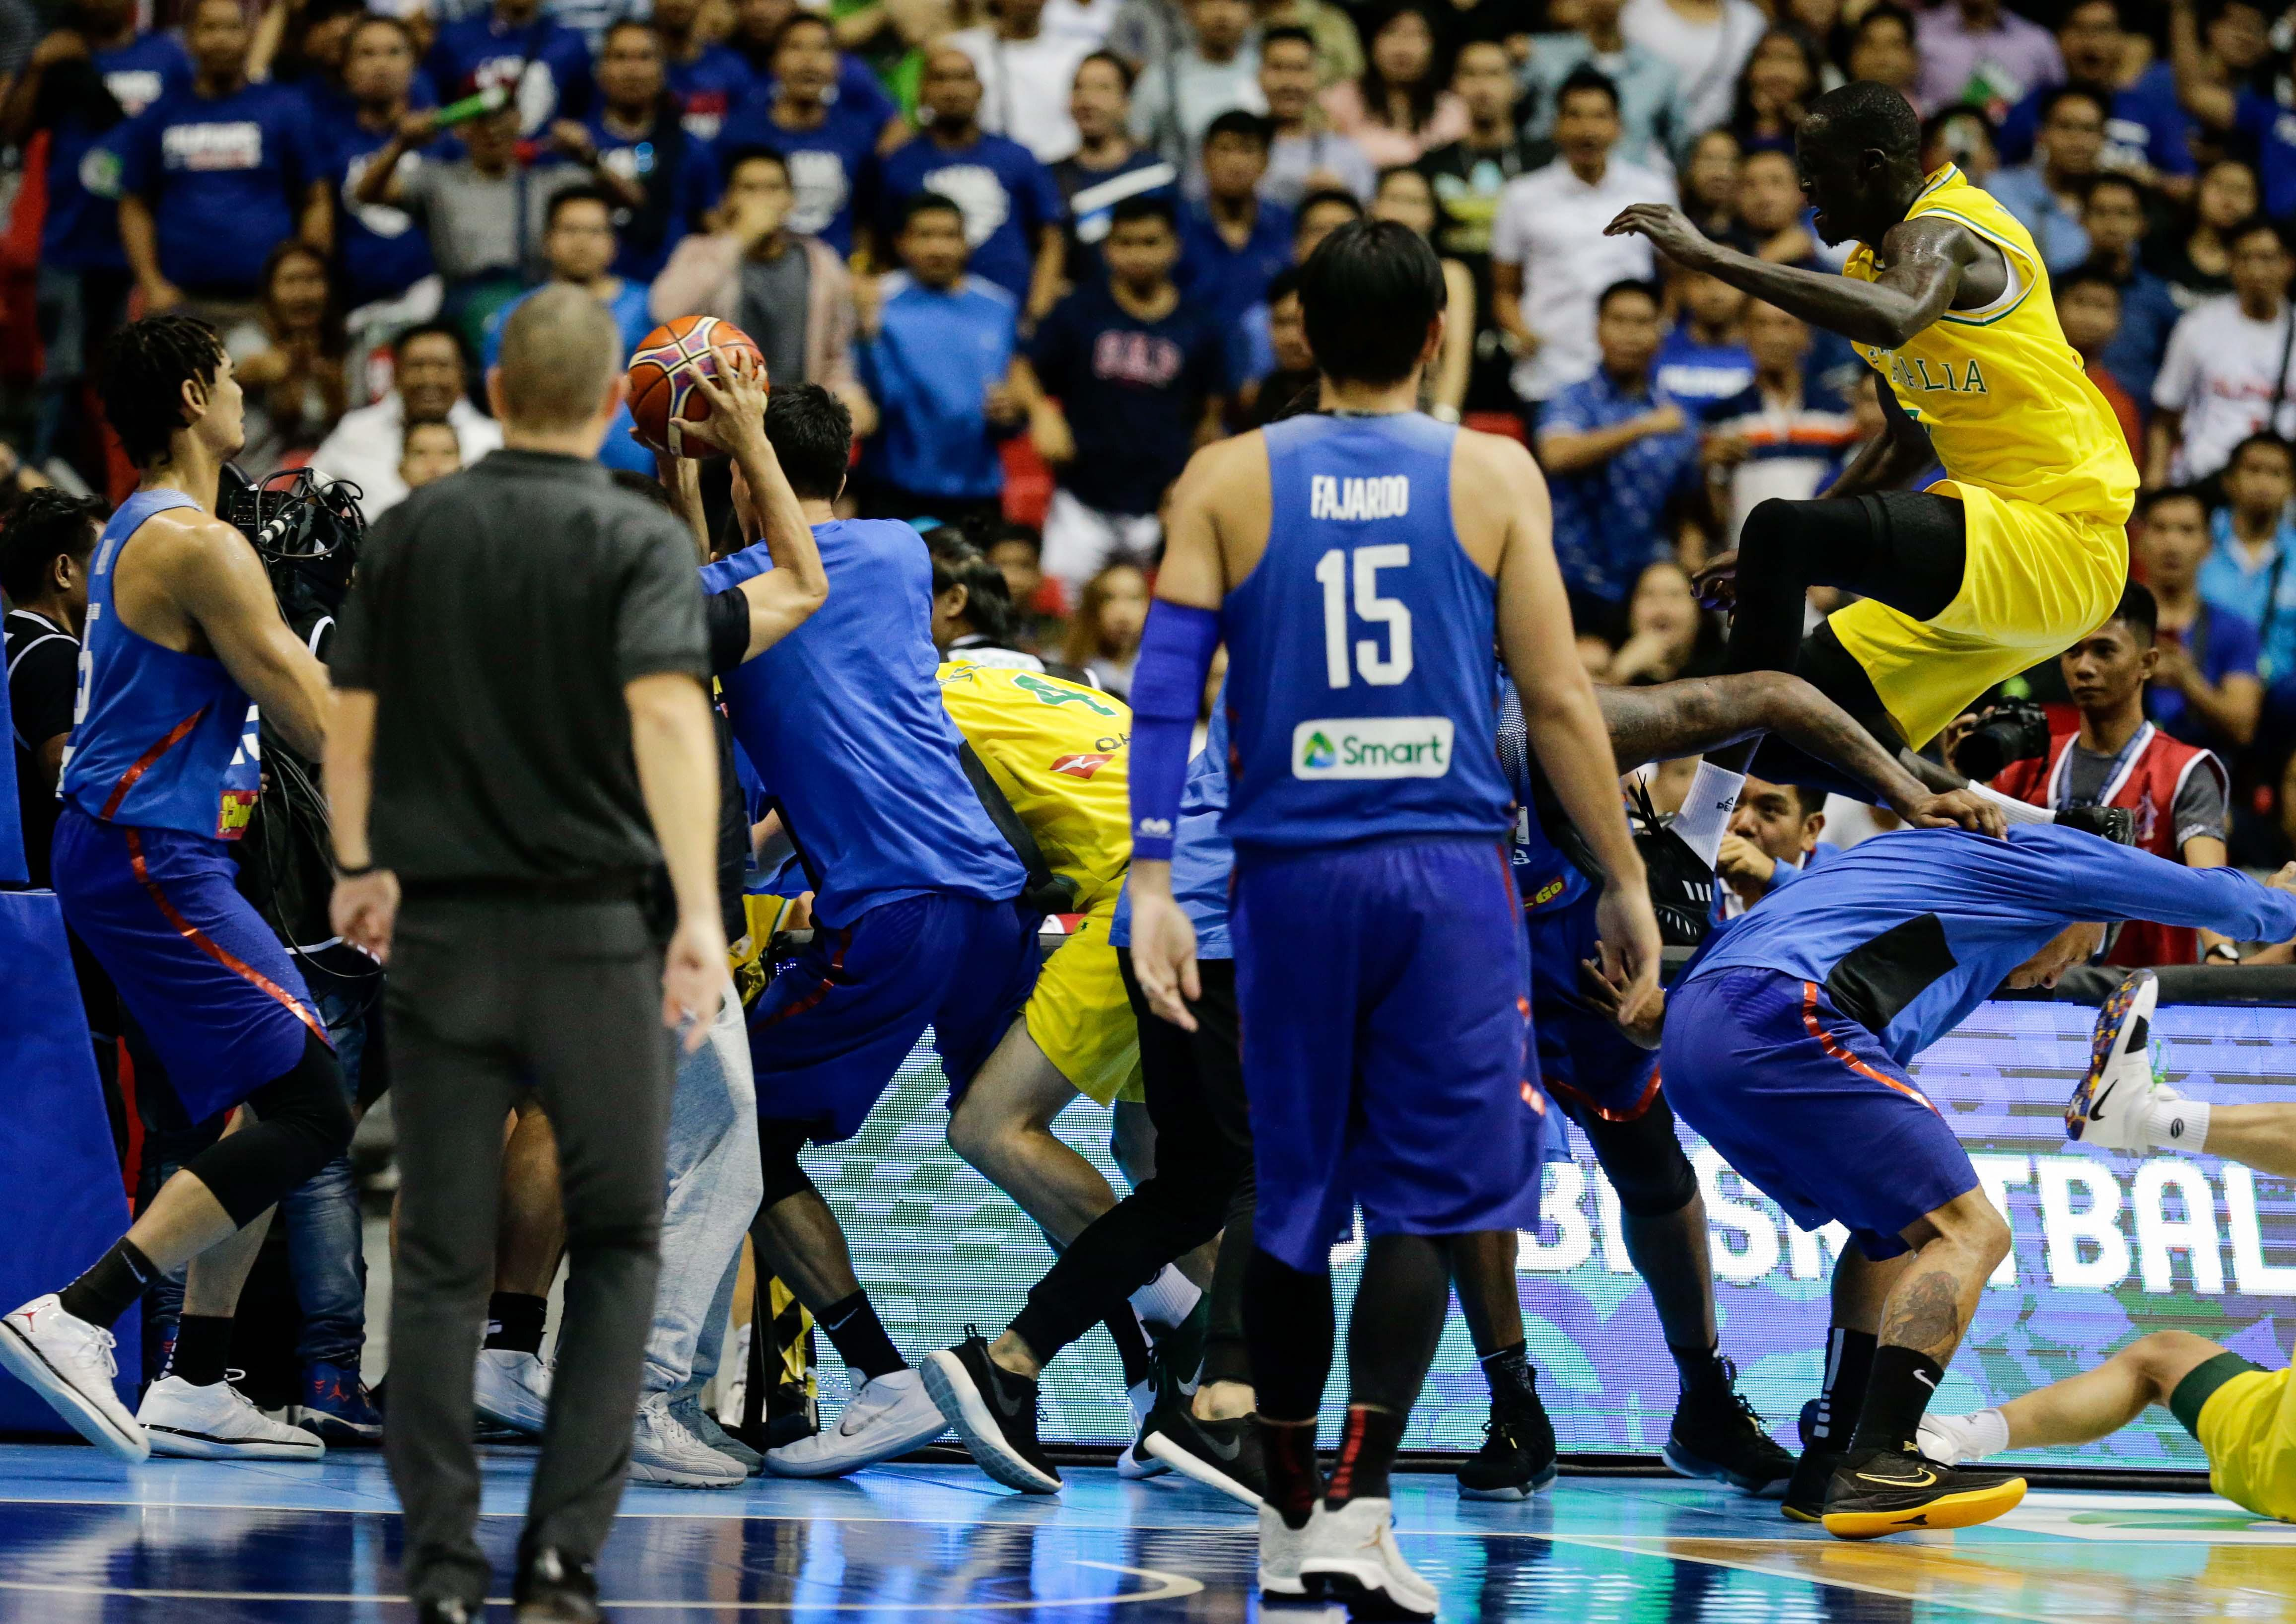 Basketball Chairs Shocking Moment Australia And Philippines Brawl With Flying Knees